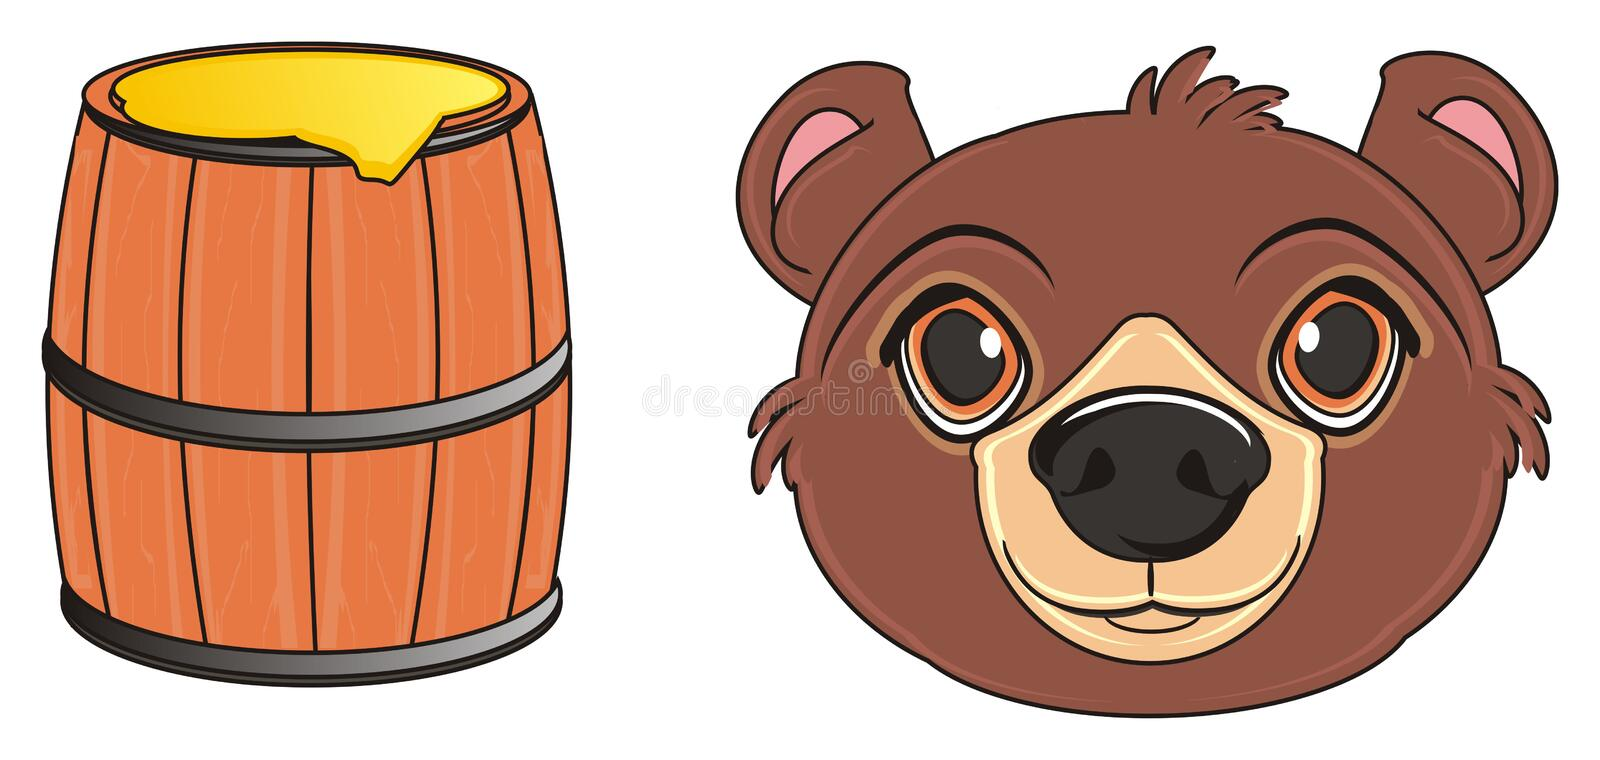 Head of bear with food royalty free illustration